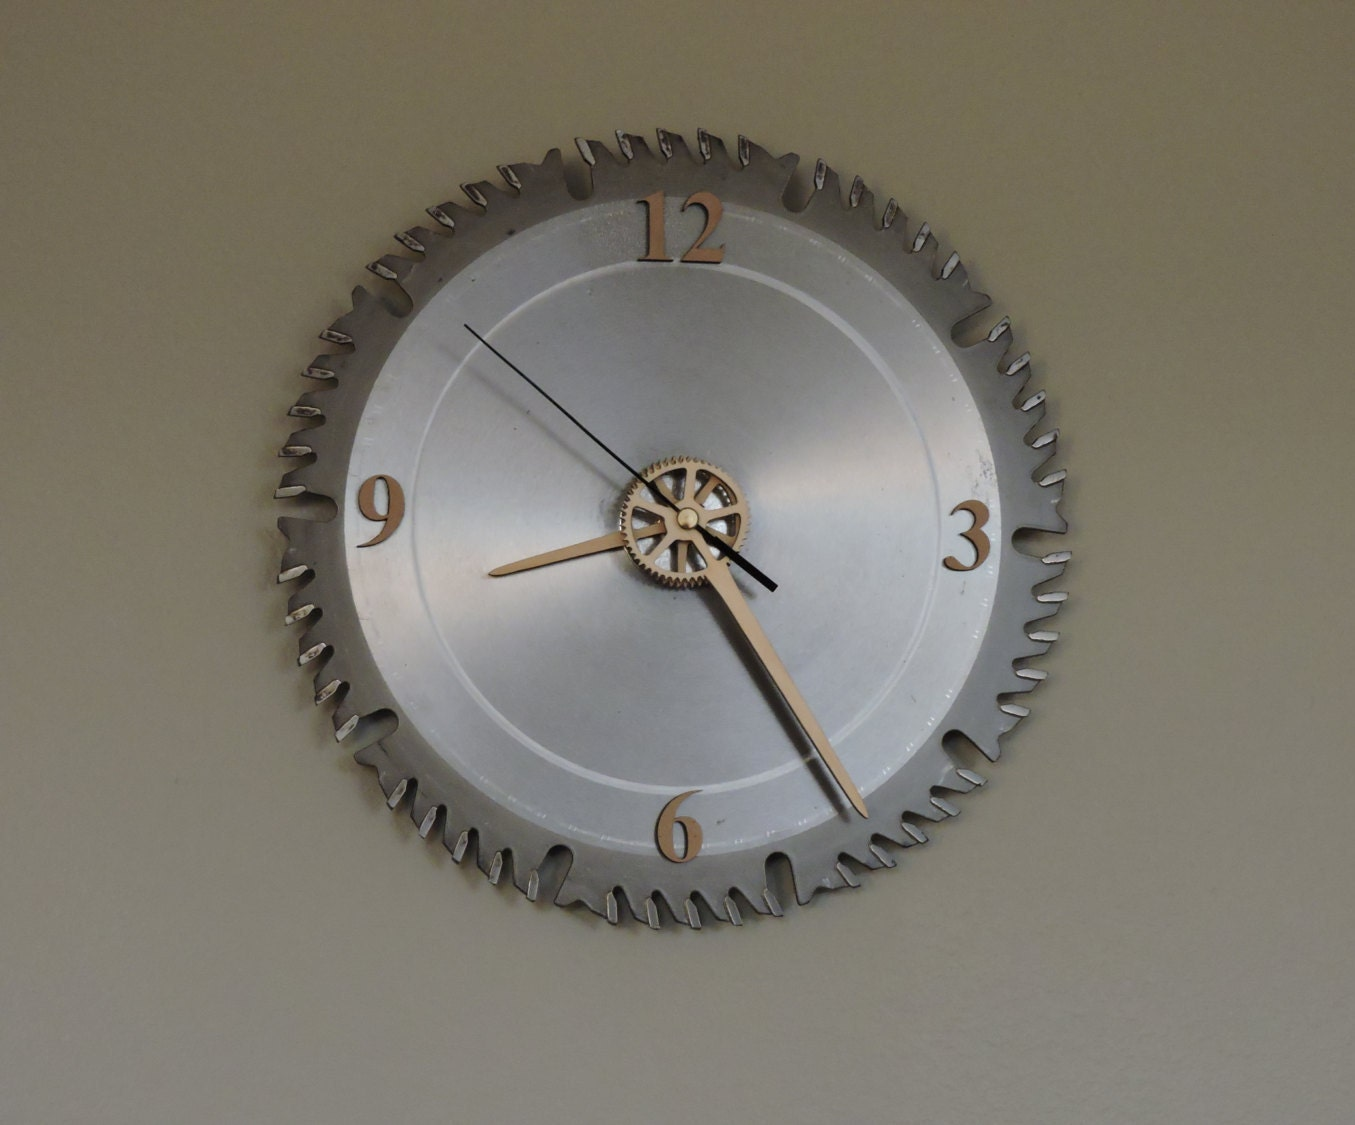 A Cut In Time Saw Blade Wall Clock 2 By Cj7designs On Etsy